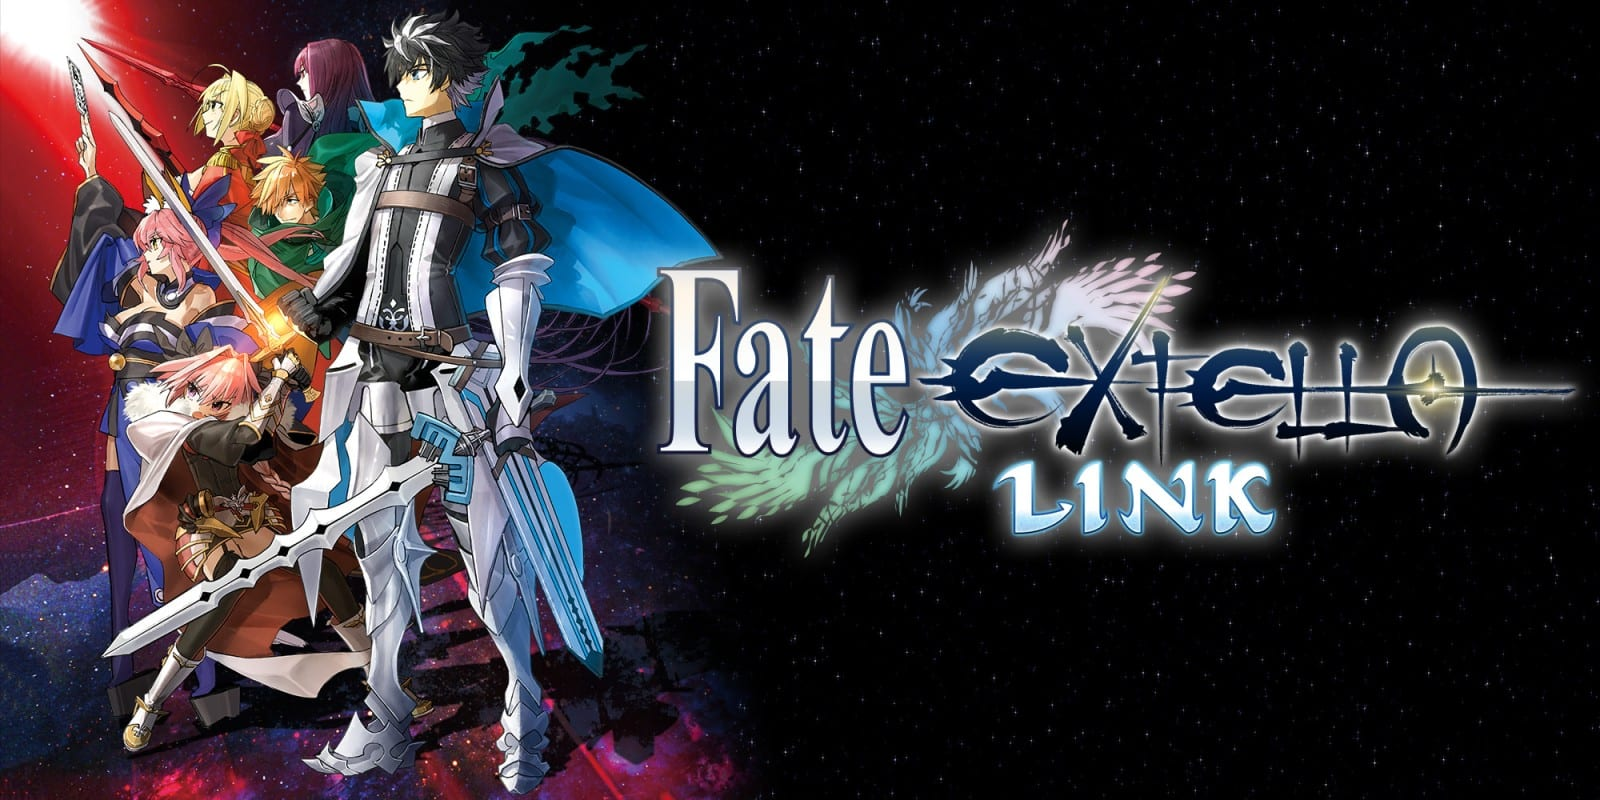 Fate/Extella Link arrives on Nintendo Switch, PS4 and PS Vita in Europe